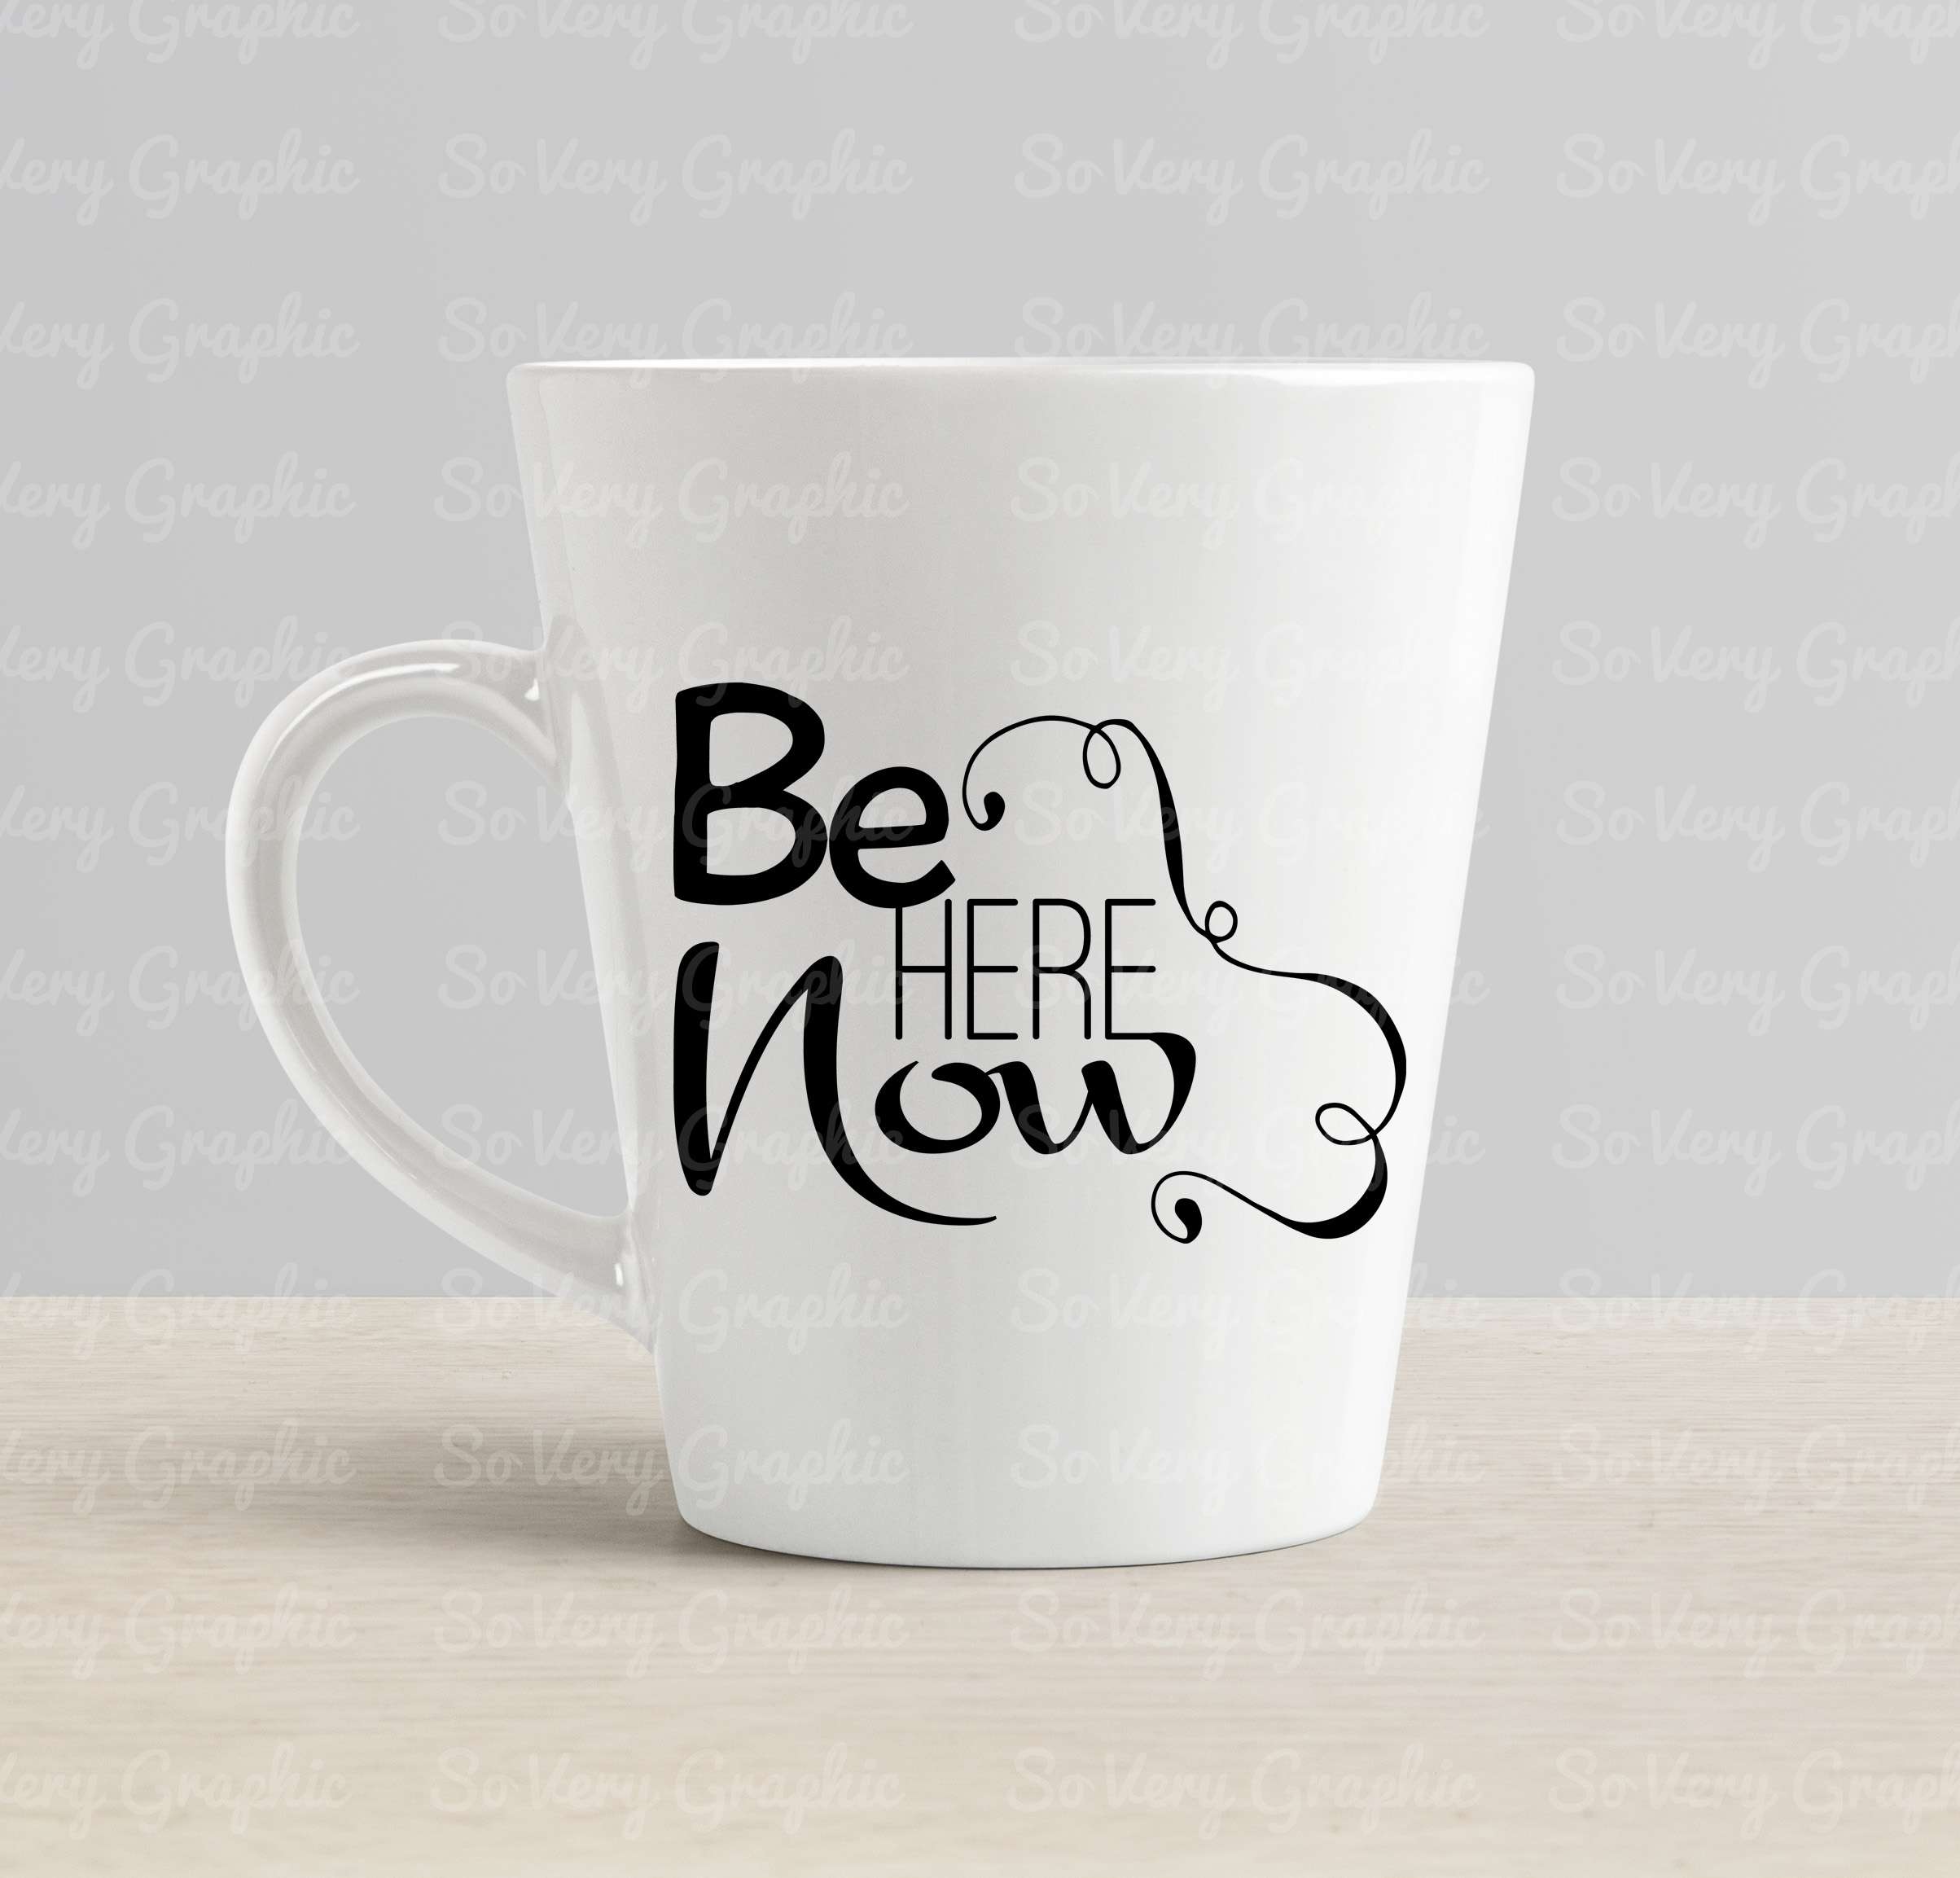 Be Here Now   Cutting & Printing File   SVG   PNG example image 2